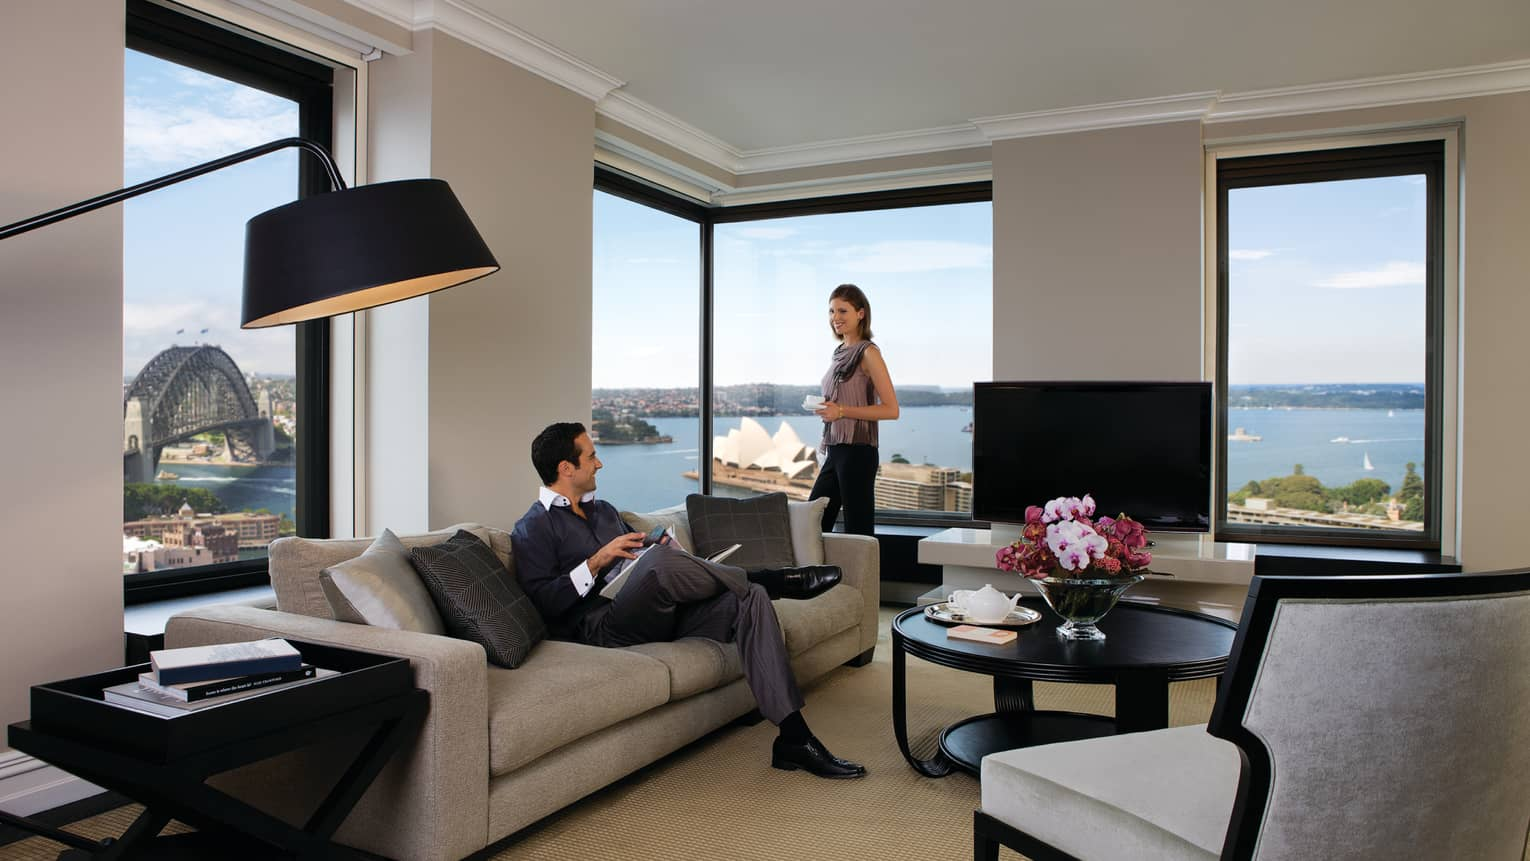 Presidential Suite, woman stands at corner windows, man reads magazine on sofa